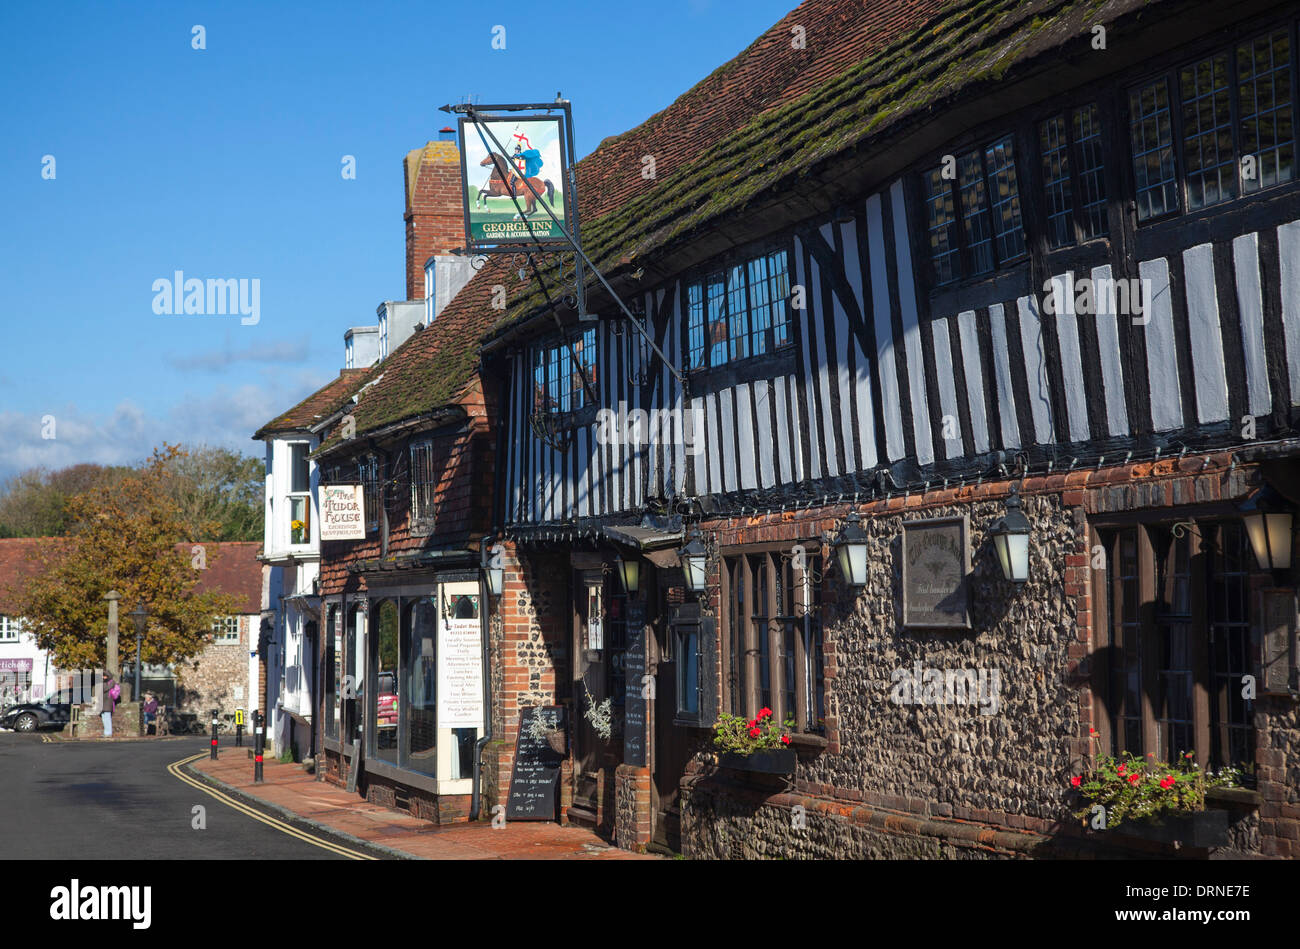 The George Inn dates from the 14th century, Alfriston village, County Sussex, England. - Stock Image